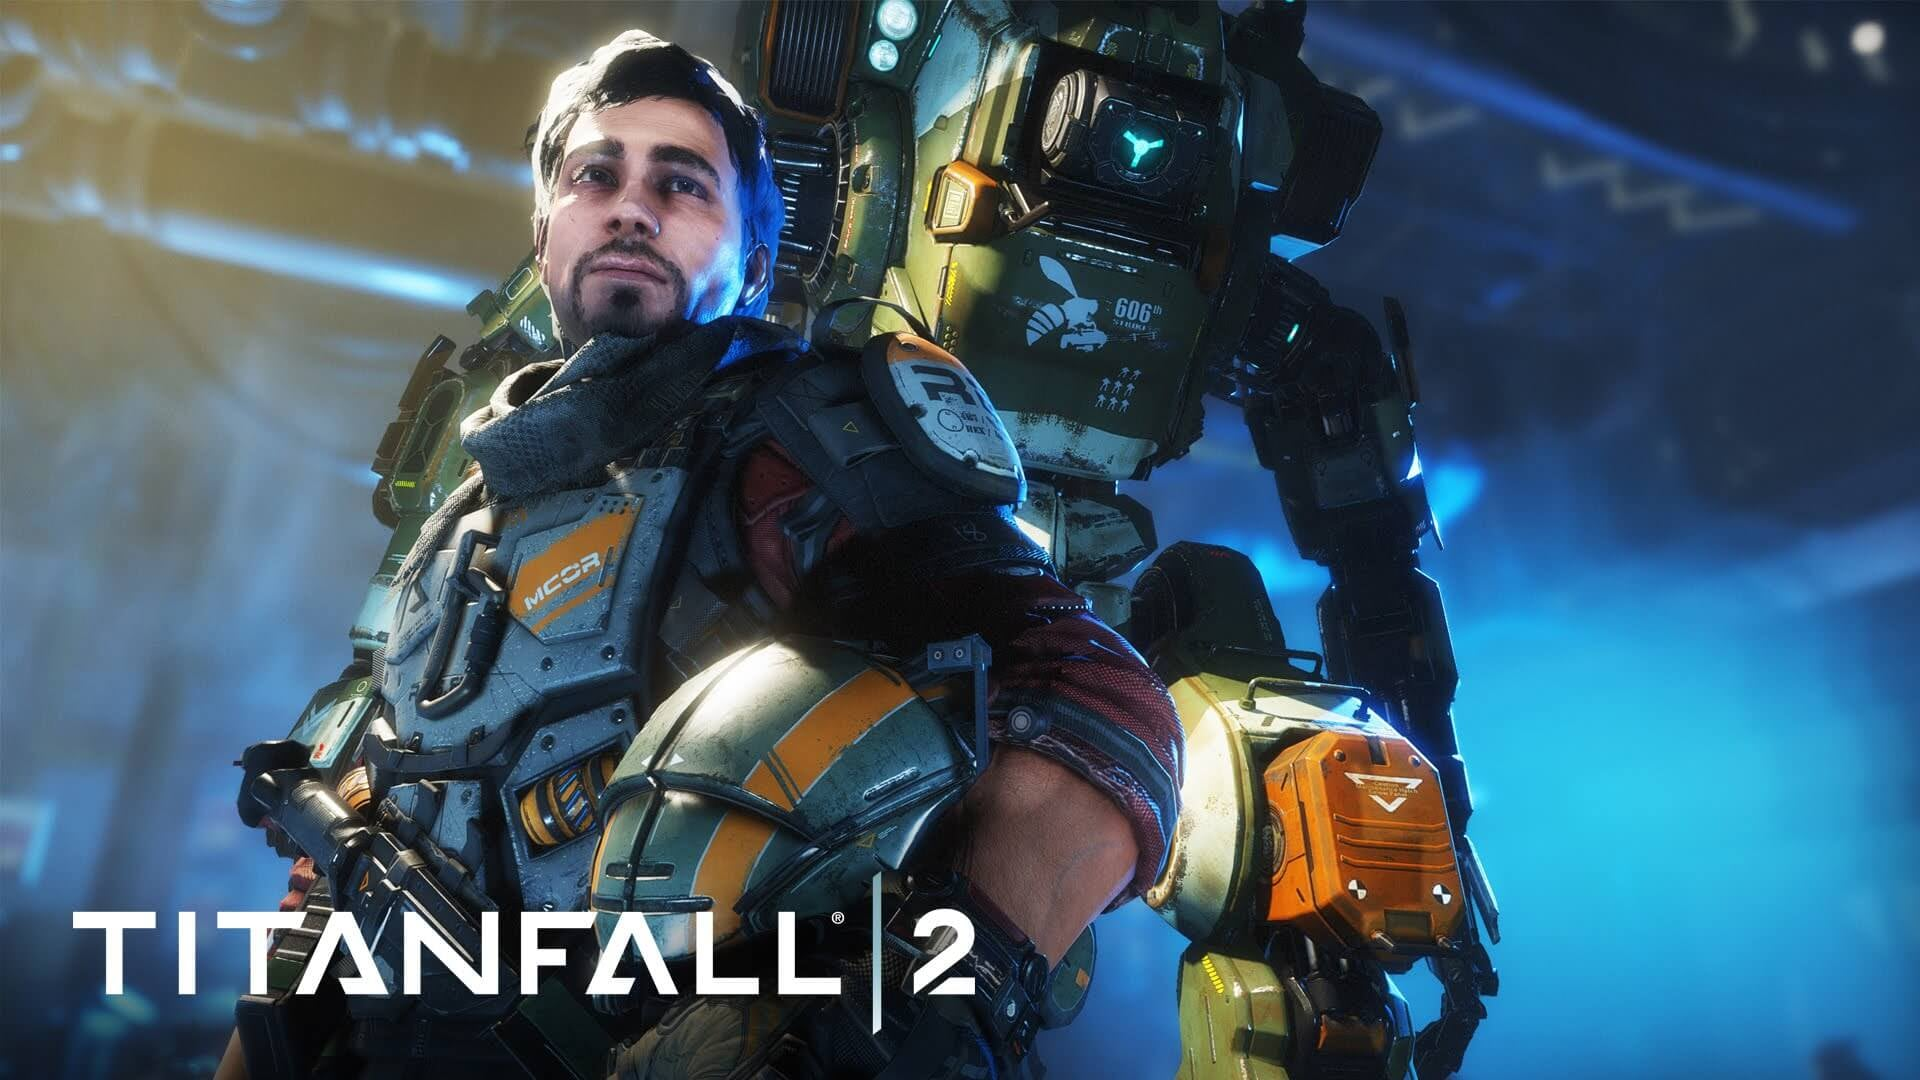 Titanfall 2 Achievements Revealed